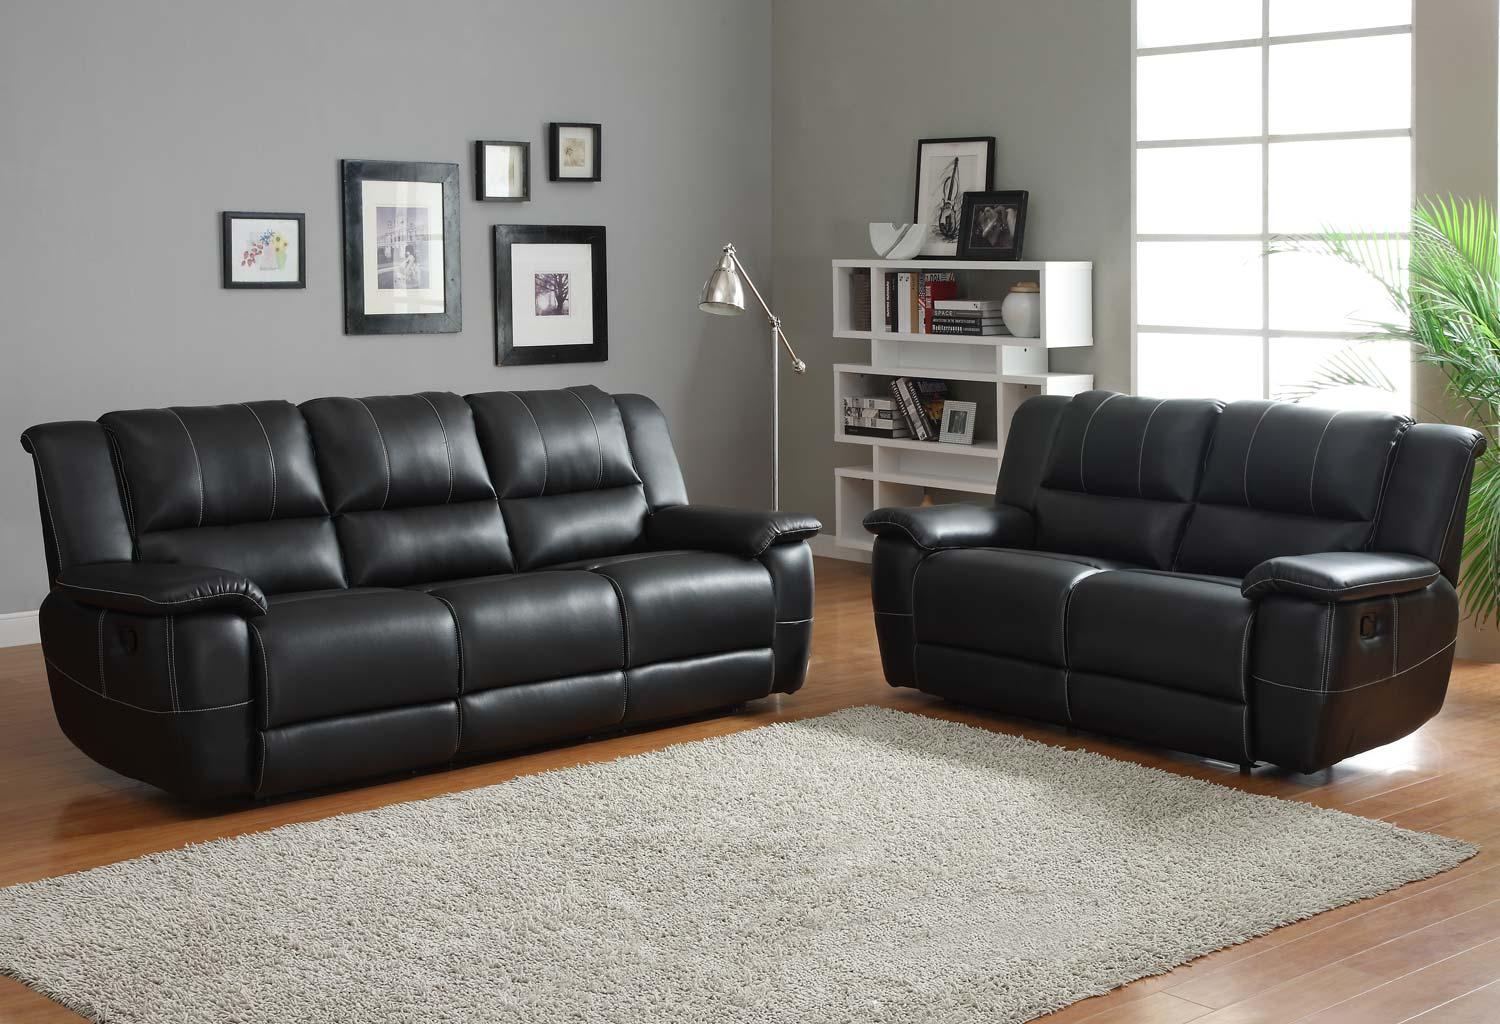 Homelegance Cantrell Reclining Sofa Set - Black - Bonded Leather Match